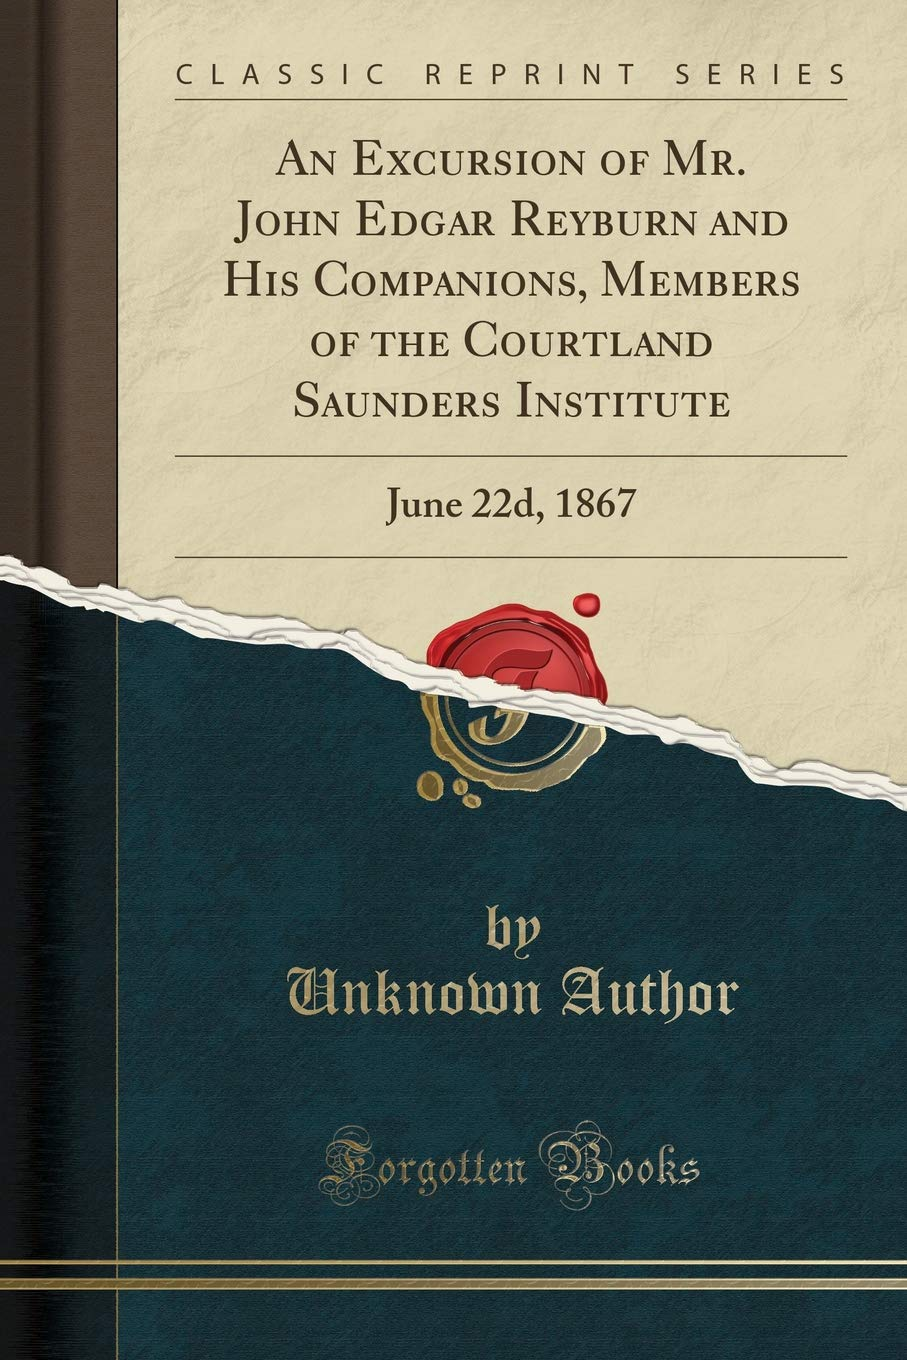 Read Online An Excursion of Mr. John Edgar Reyburn and His Companions, Members of the Courtland Saunders Institute: June 22d, 1867 (Classic Reprint) ebook